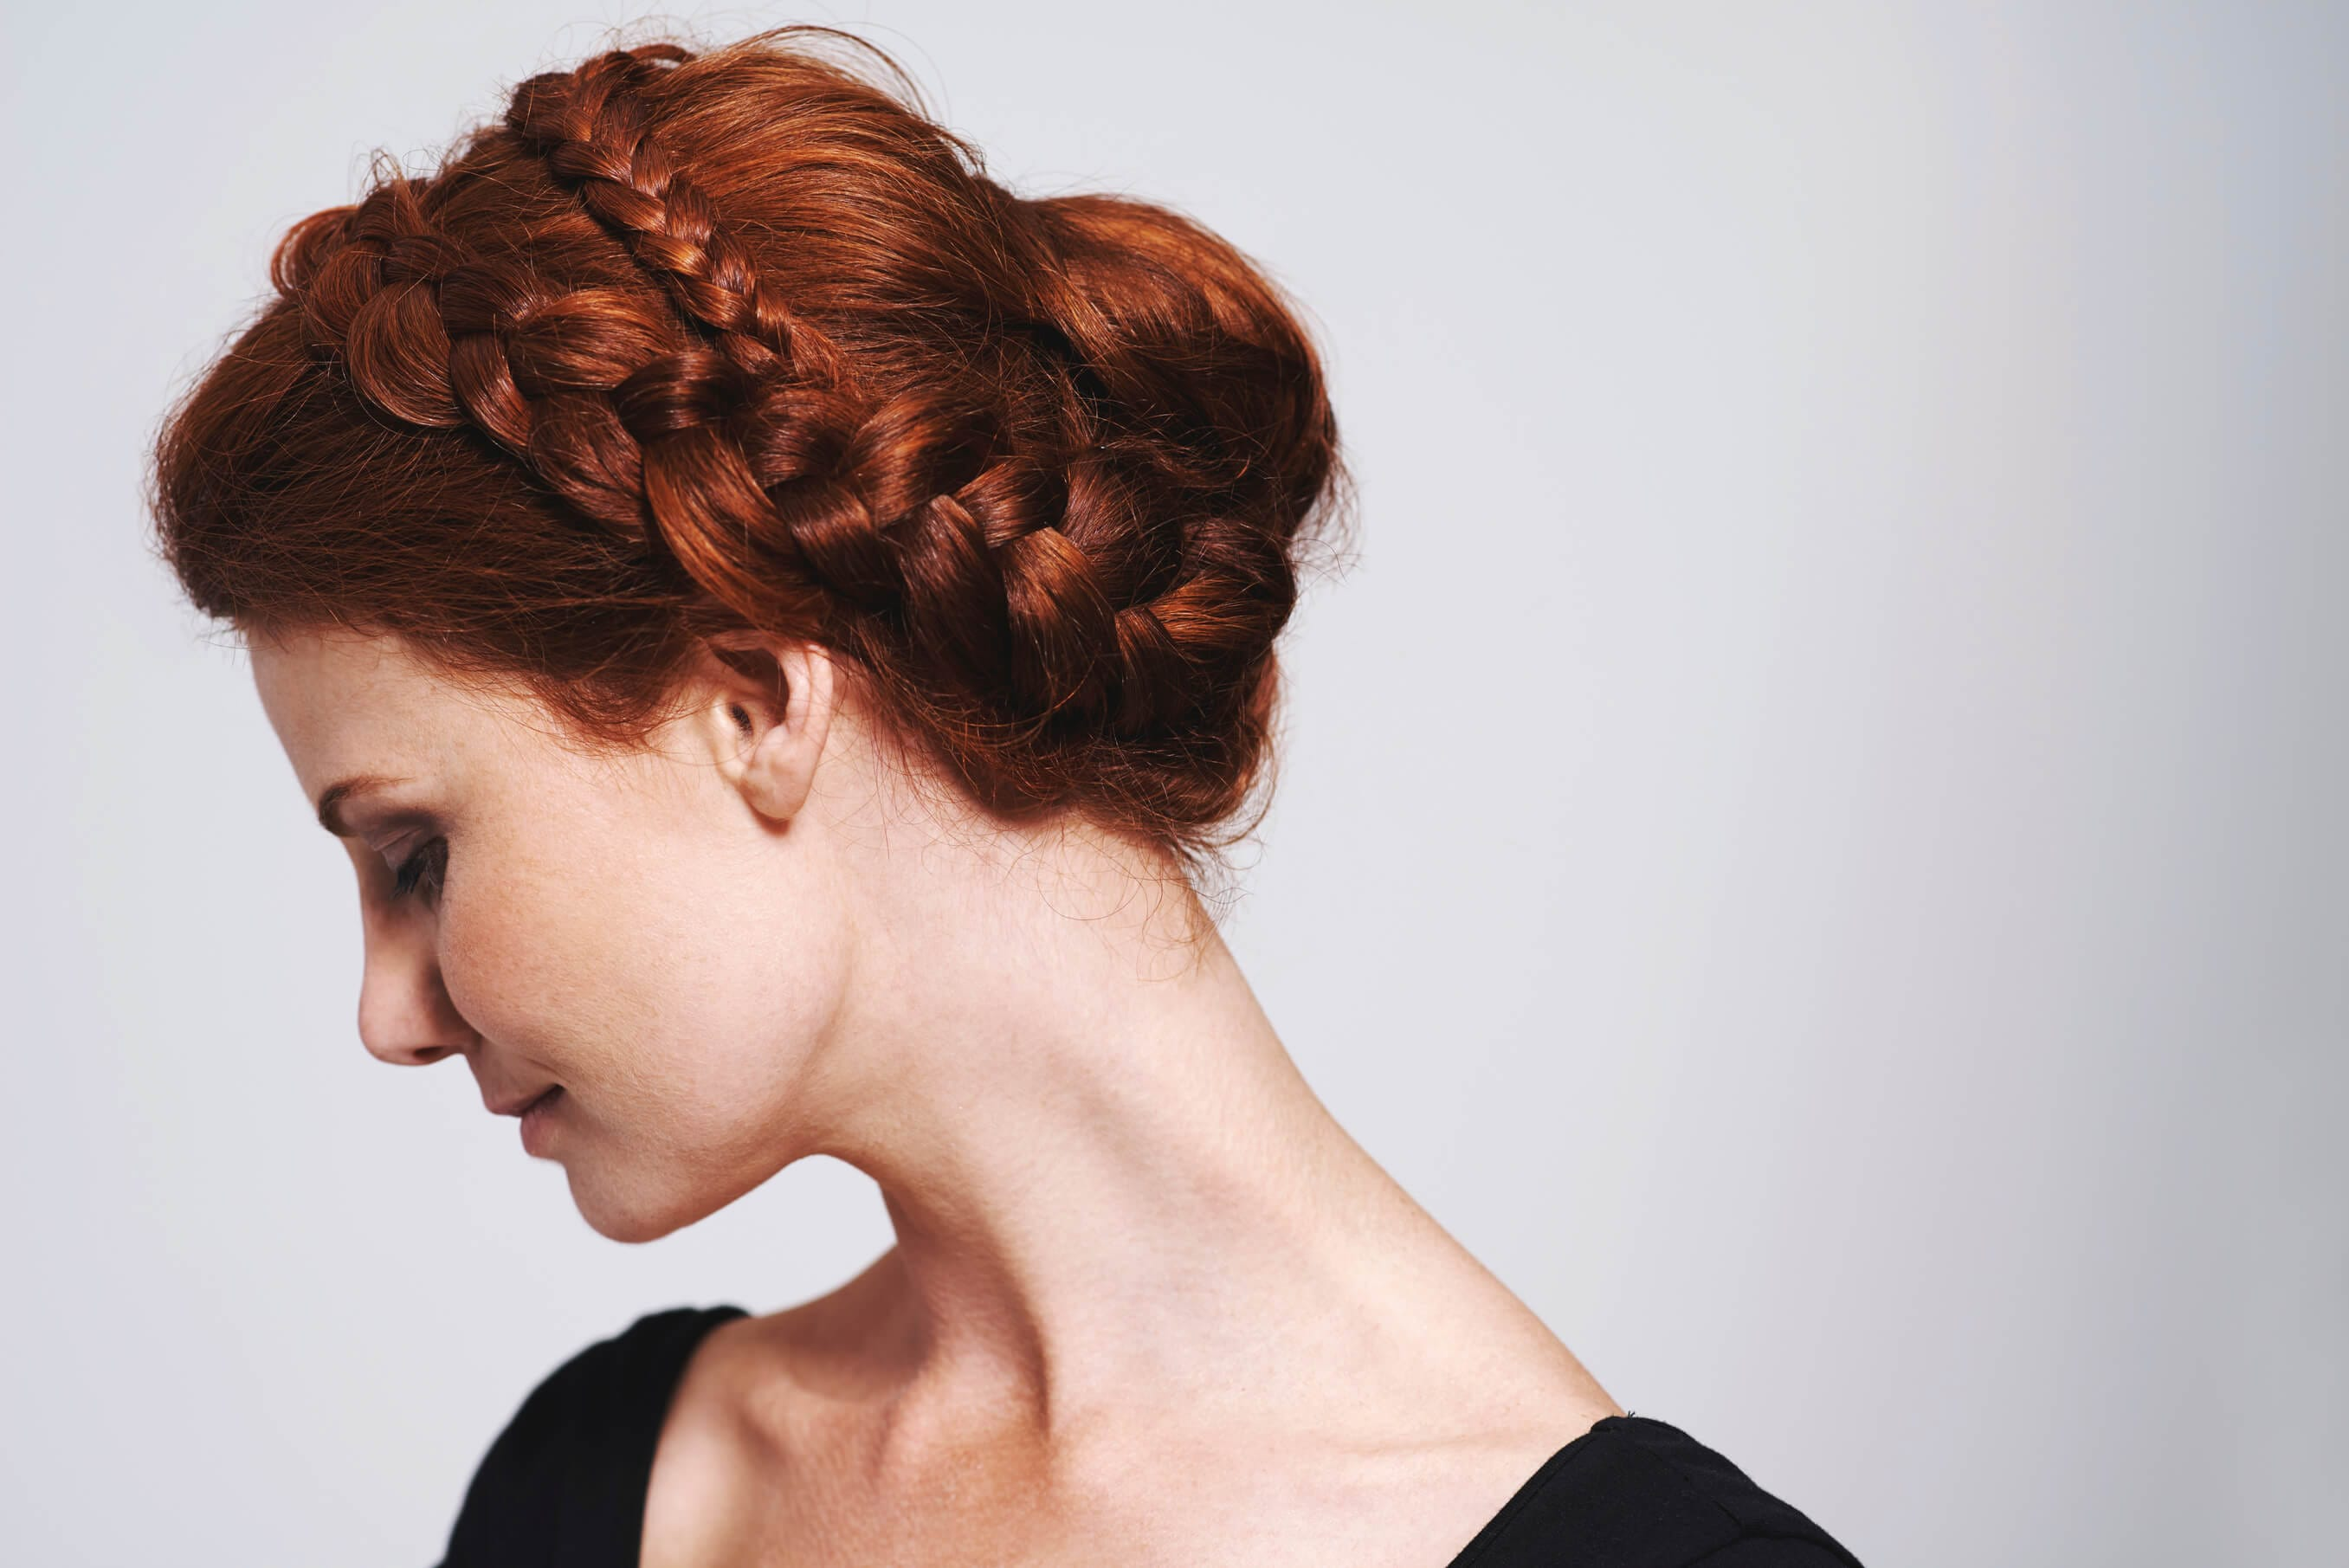 Create chic winter ball hairstyles with a braided bun